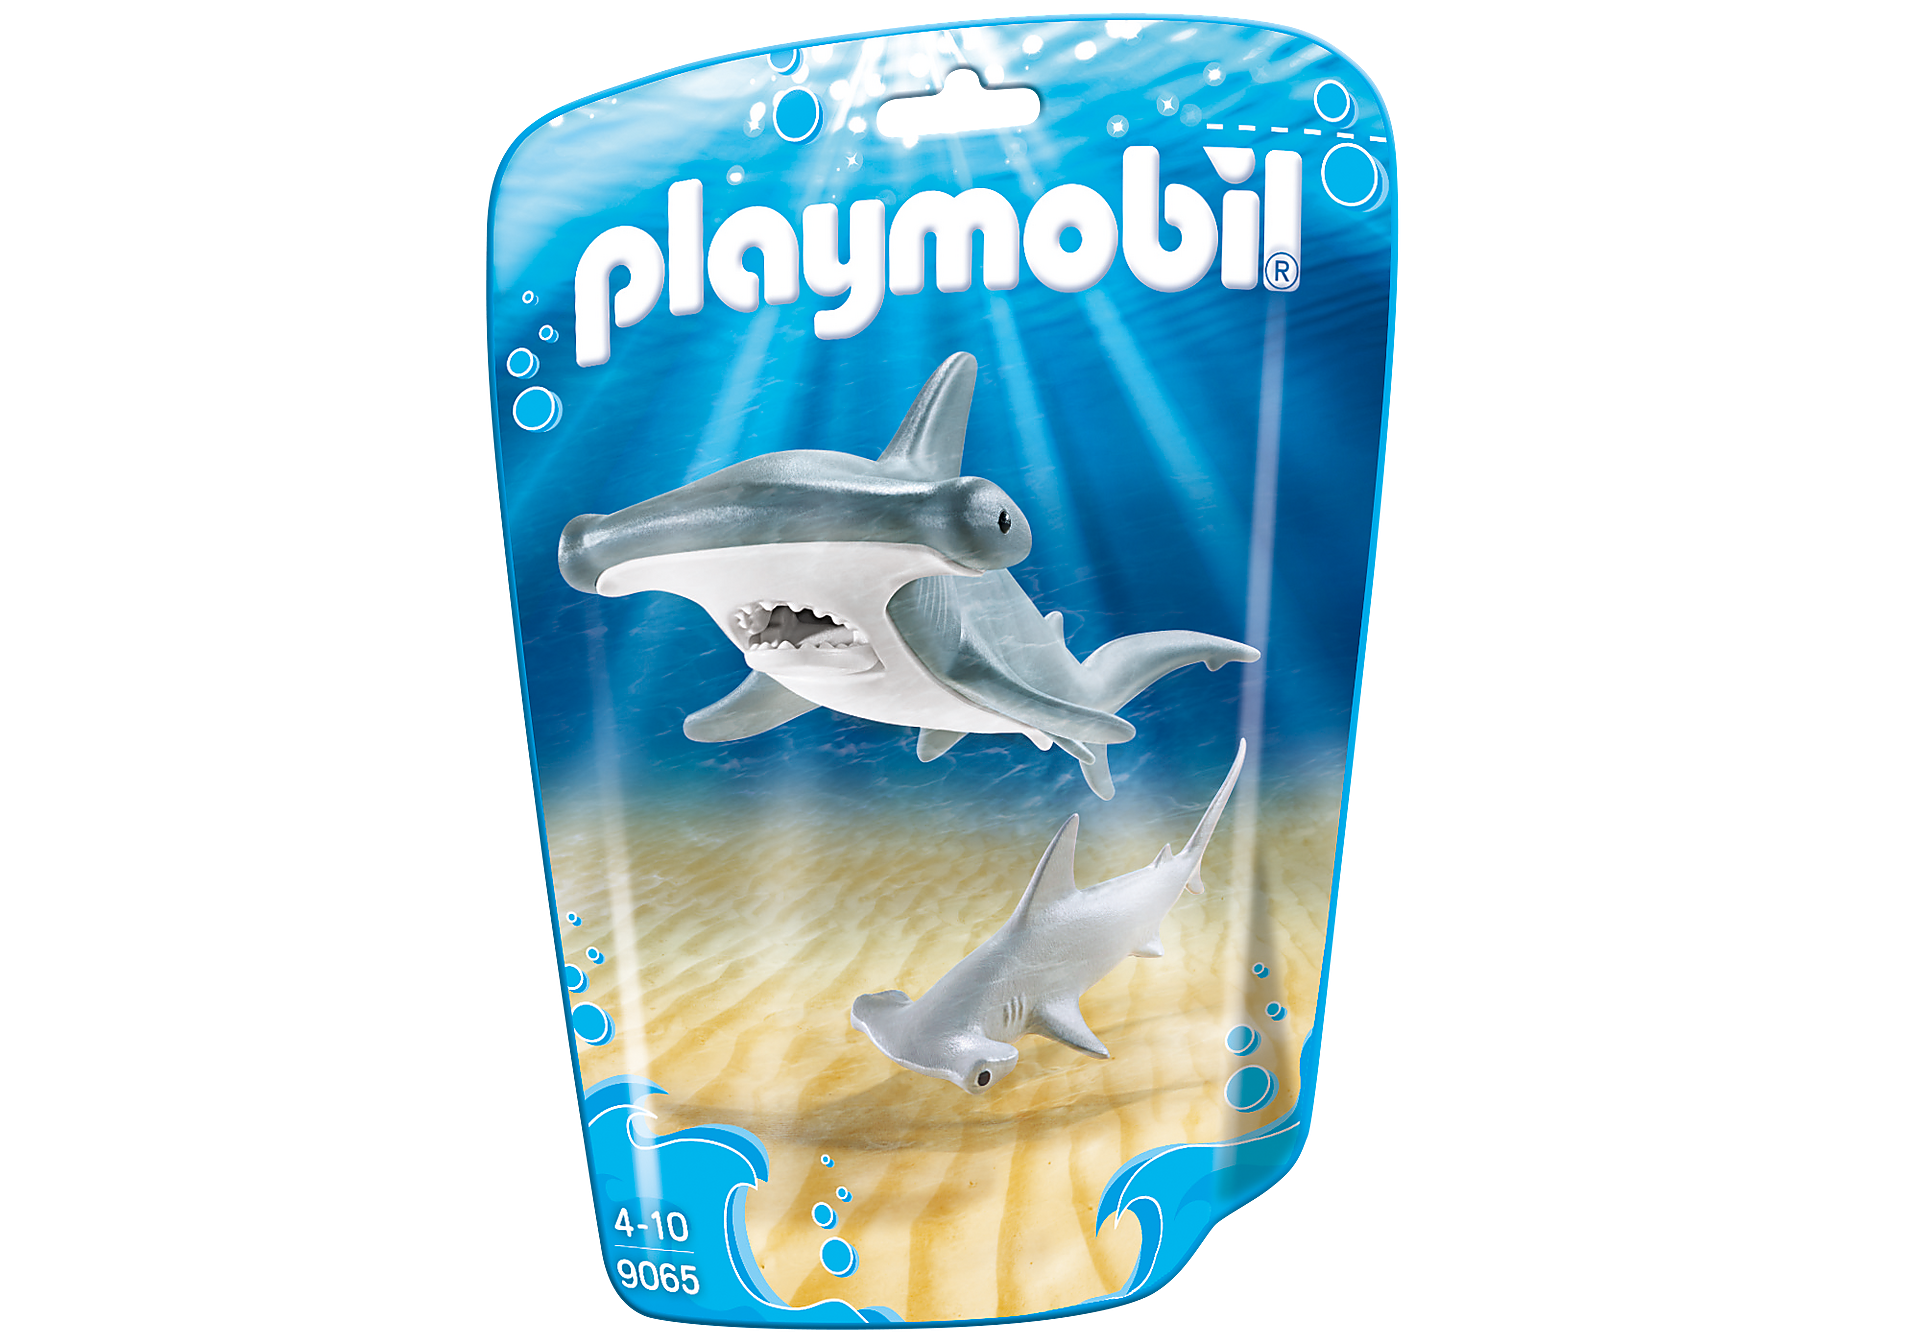 9065 Hammerhead Shark with Baby zoom image3